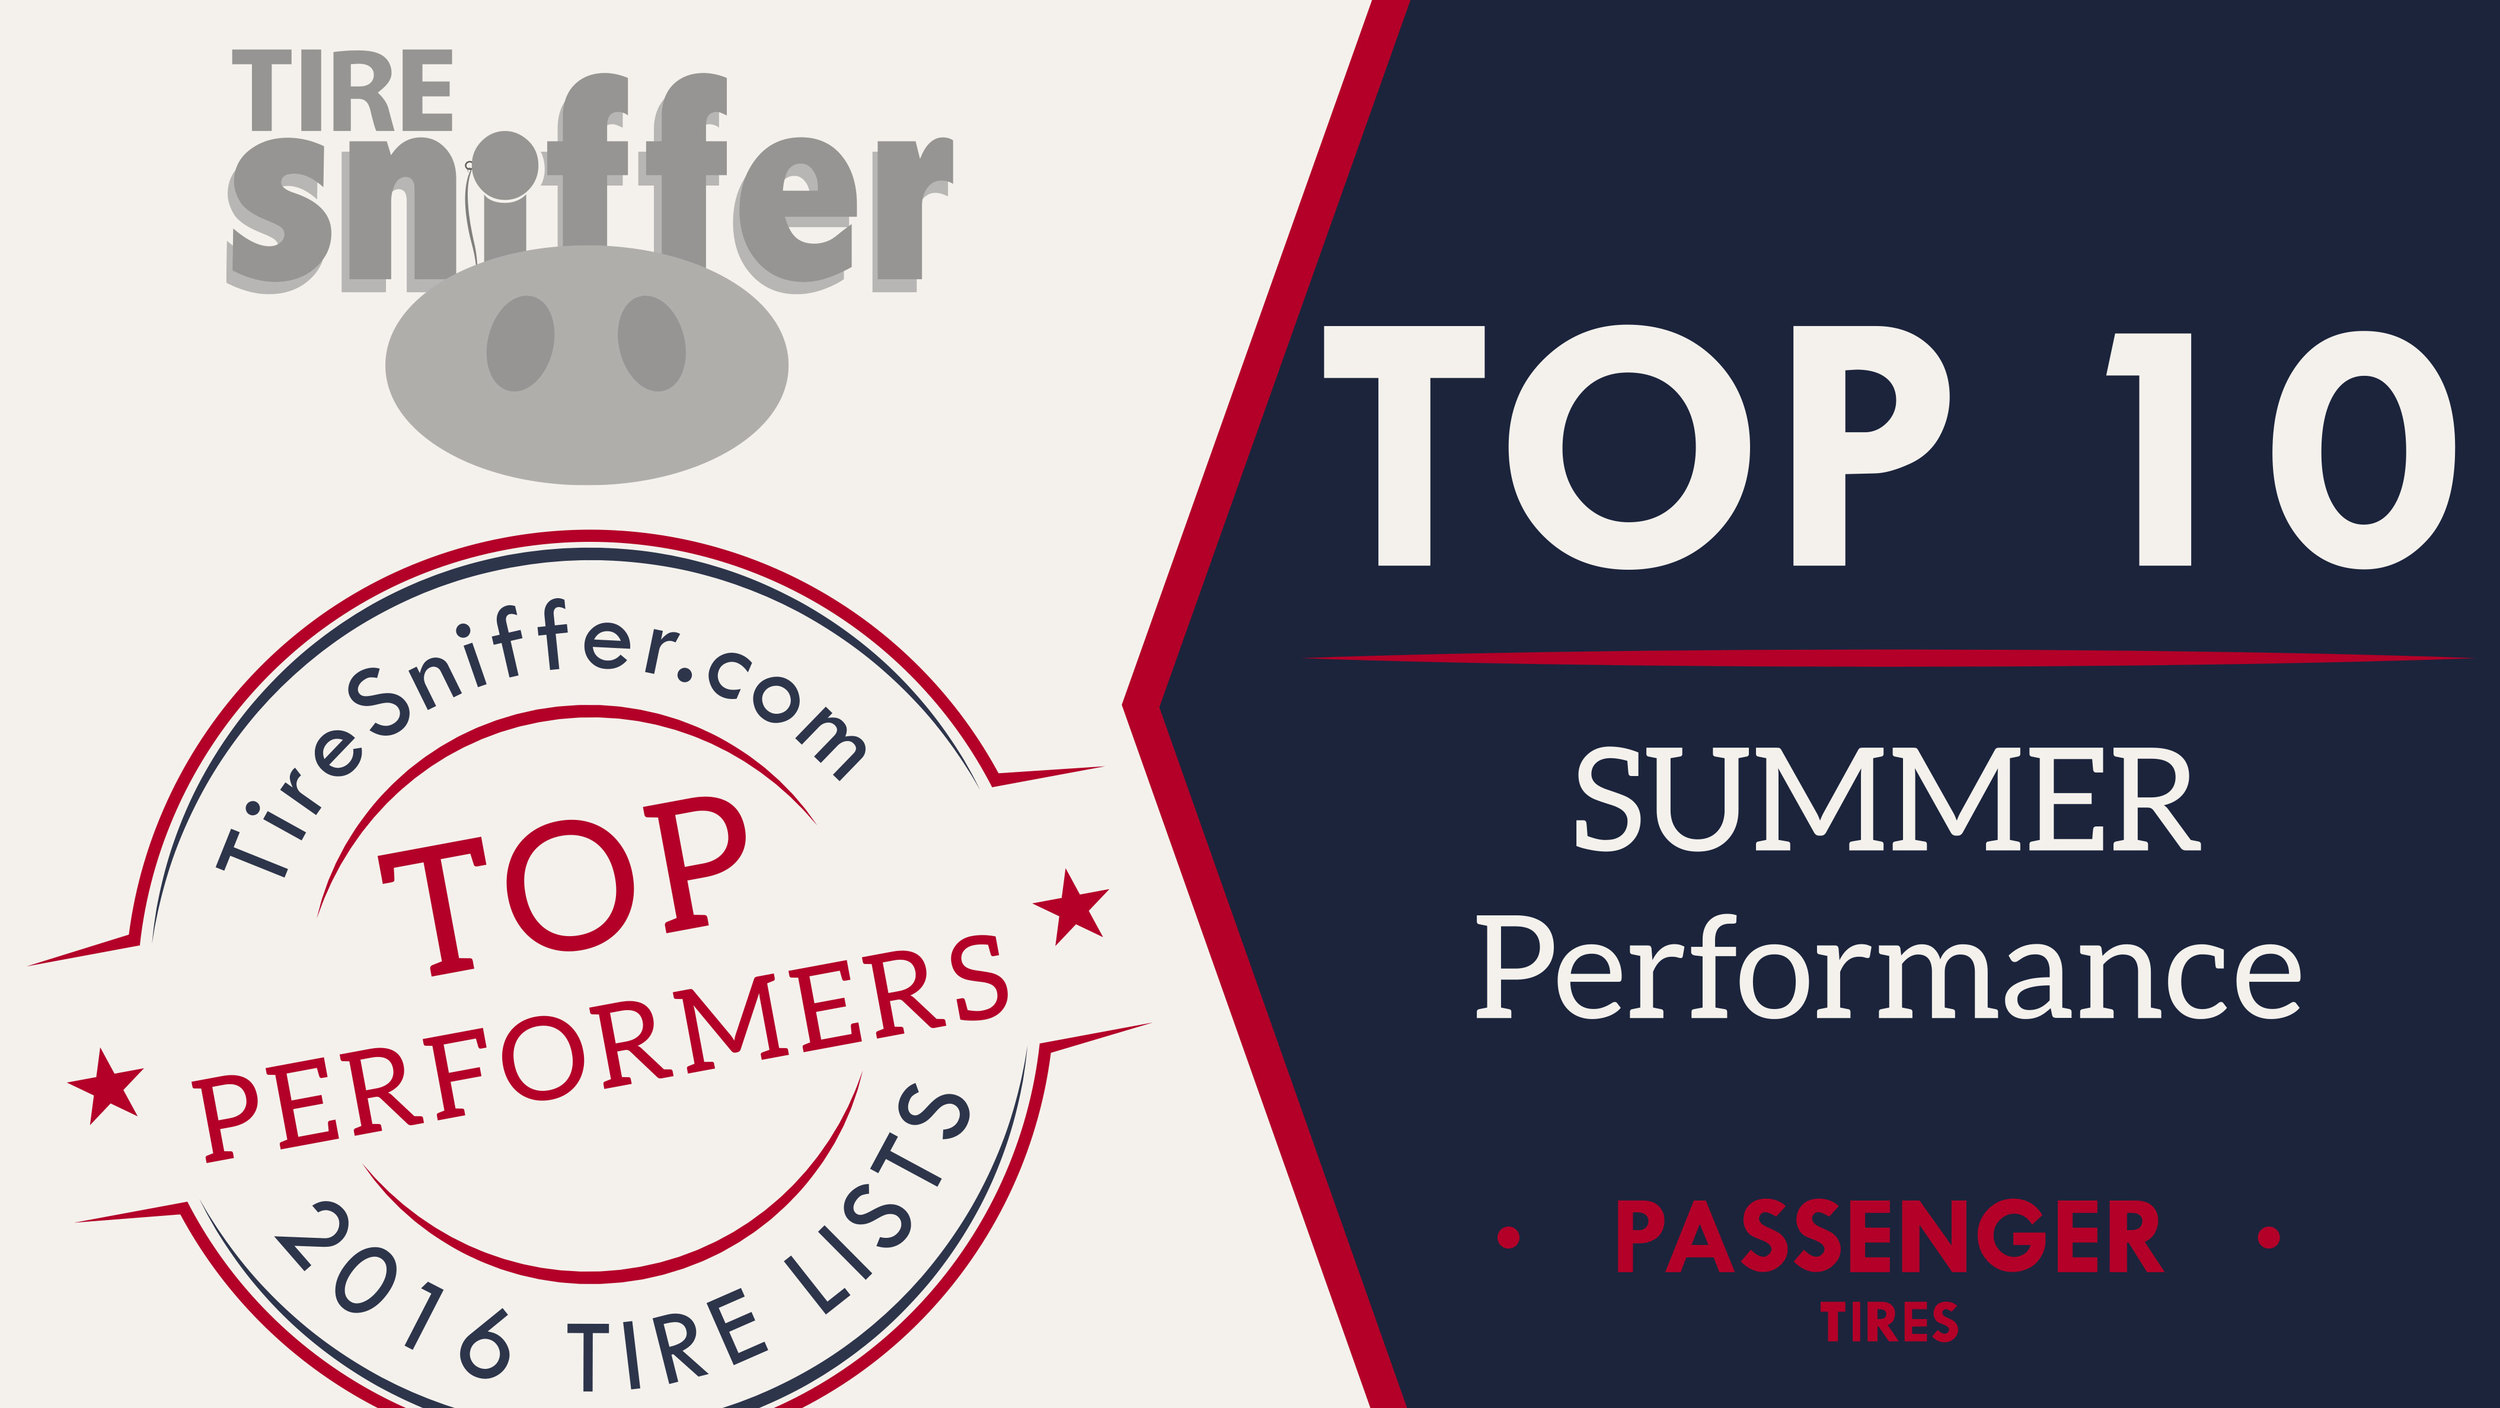 Top 10 Performance Summer Tires List for 2016